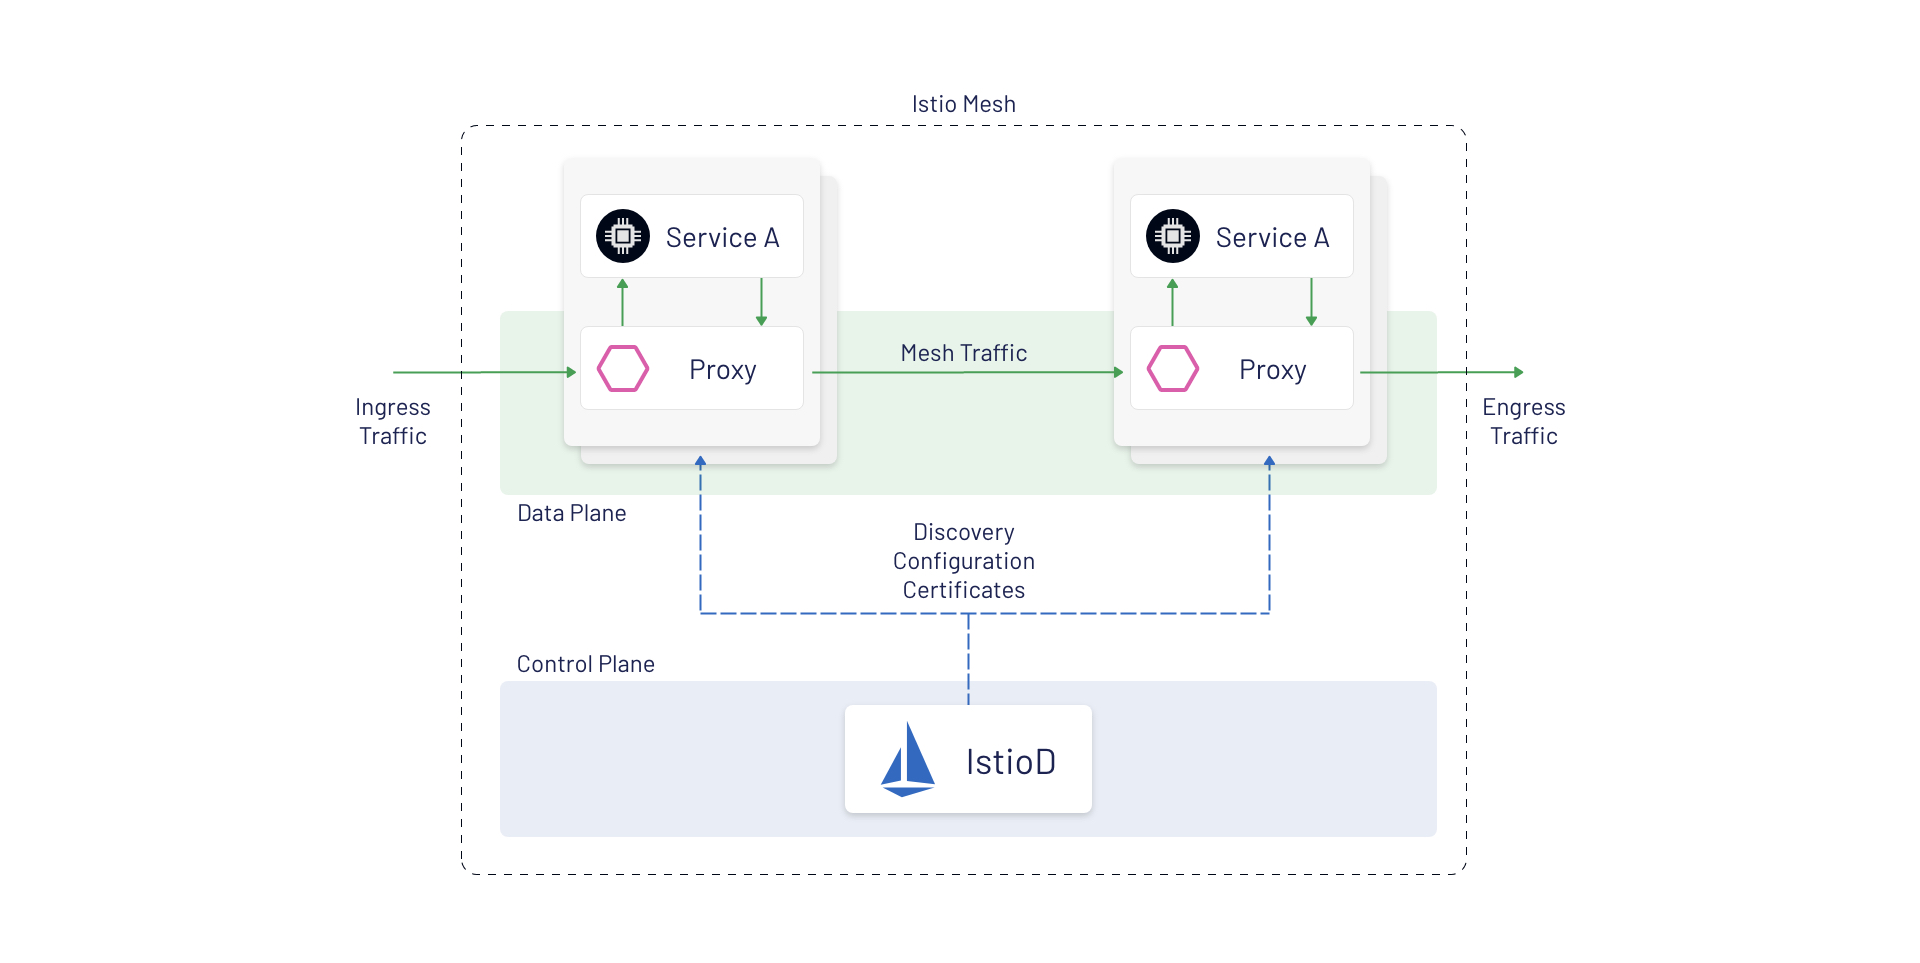 The architecture o9f an Istio Mesh, detailing ingress traffic coming into the mesh with two services and Envoy proxies to serve traffic and the IstioD control plane visible